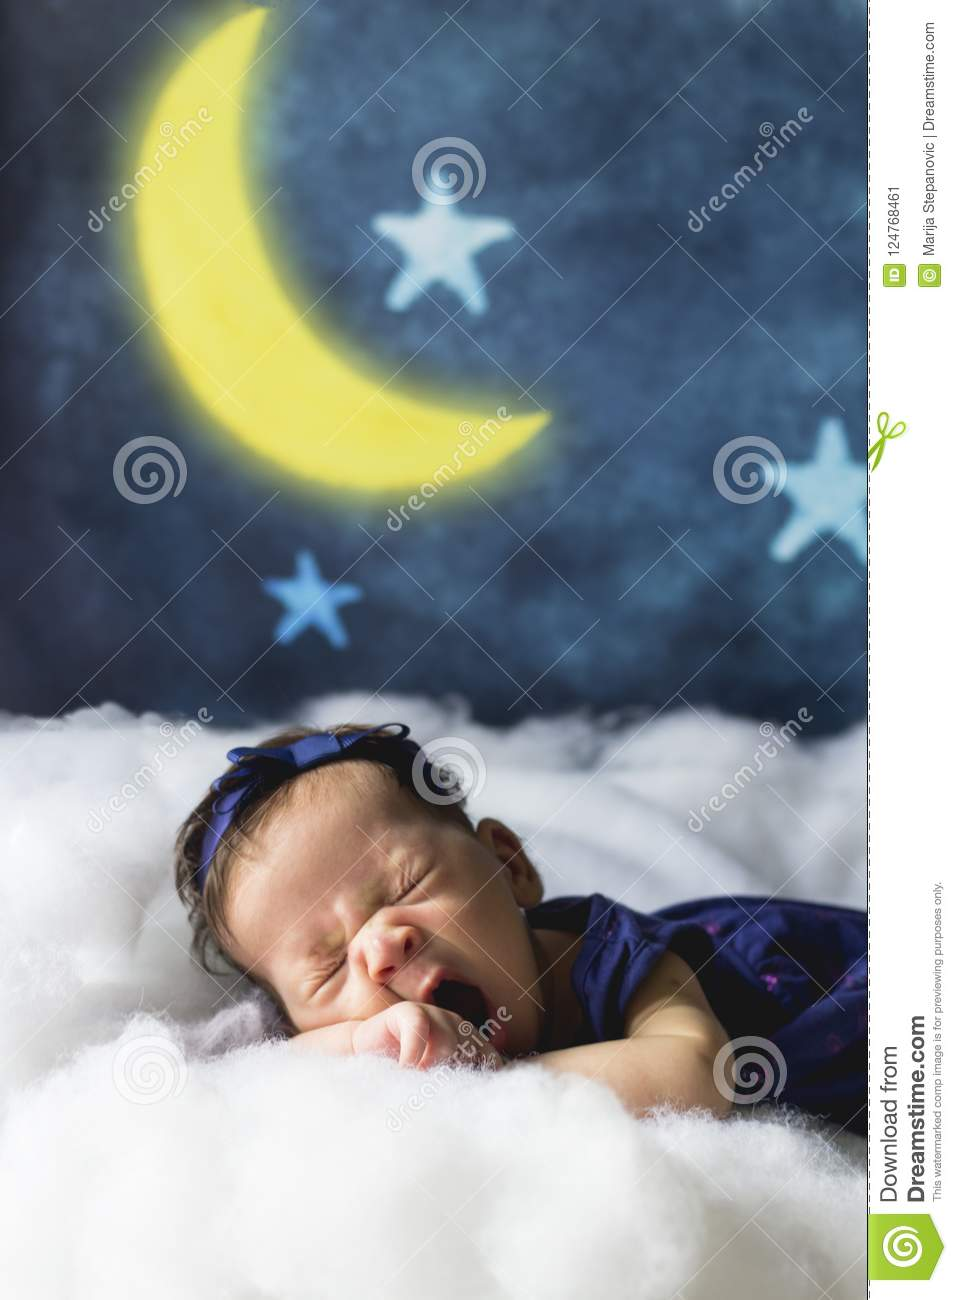 Newborn Bedtime Sweet Dreams Bedtime And Good Night Concept Sleepy Little Baby